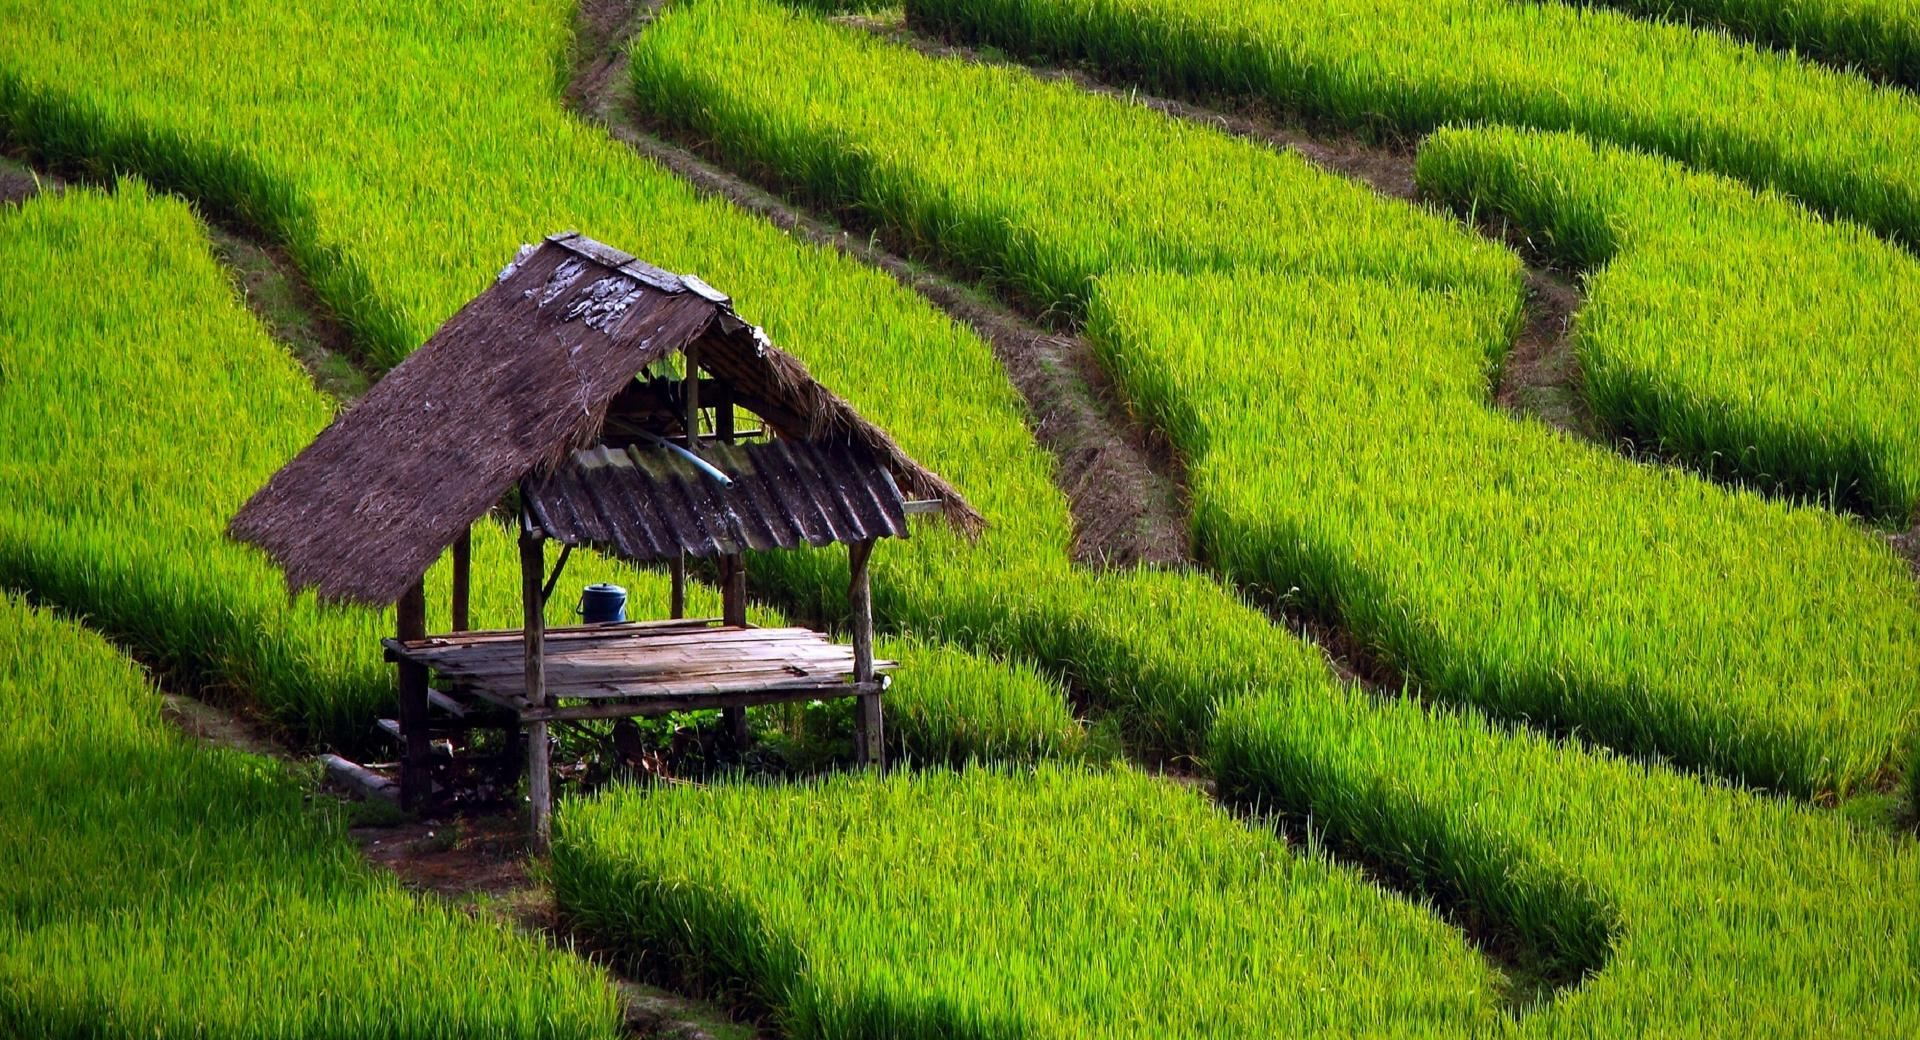 Rice Field Landscape wallpapers HD quality